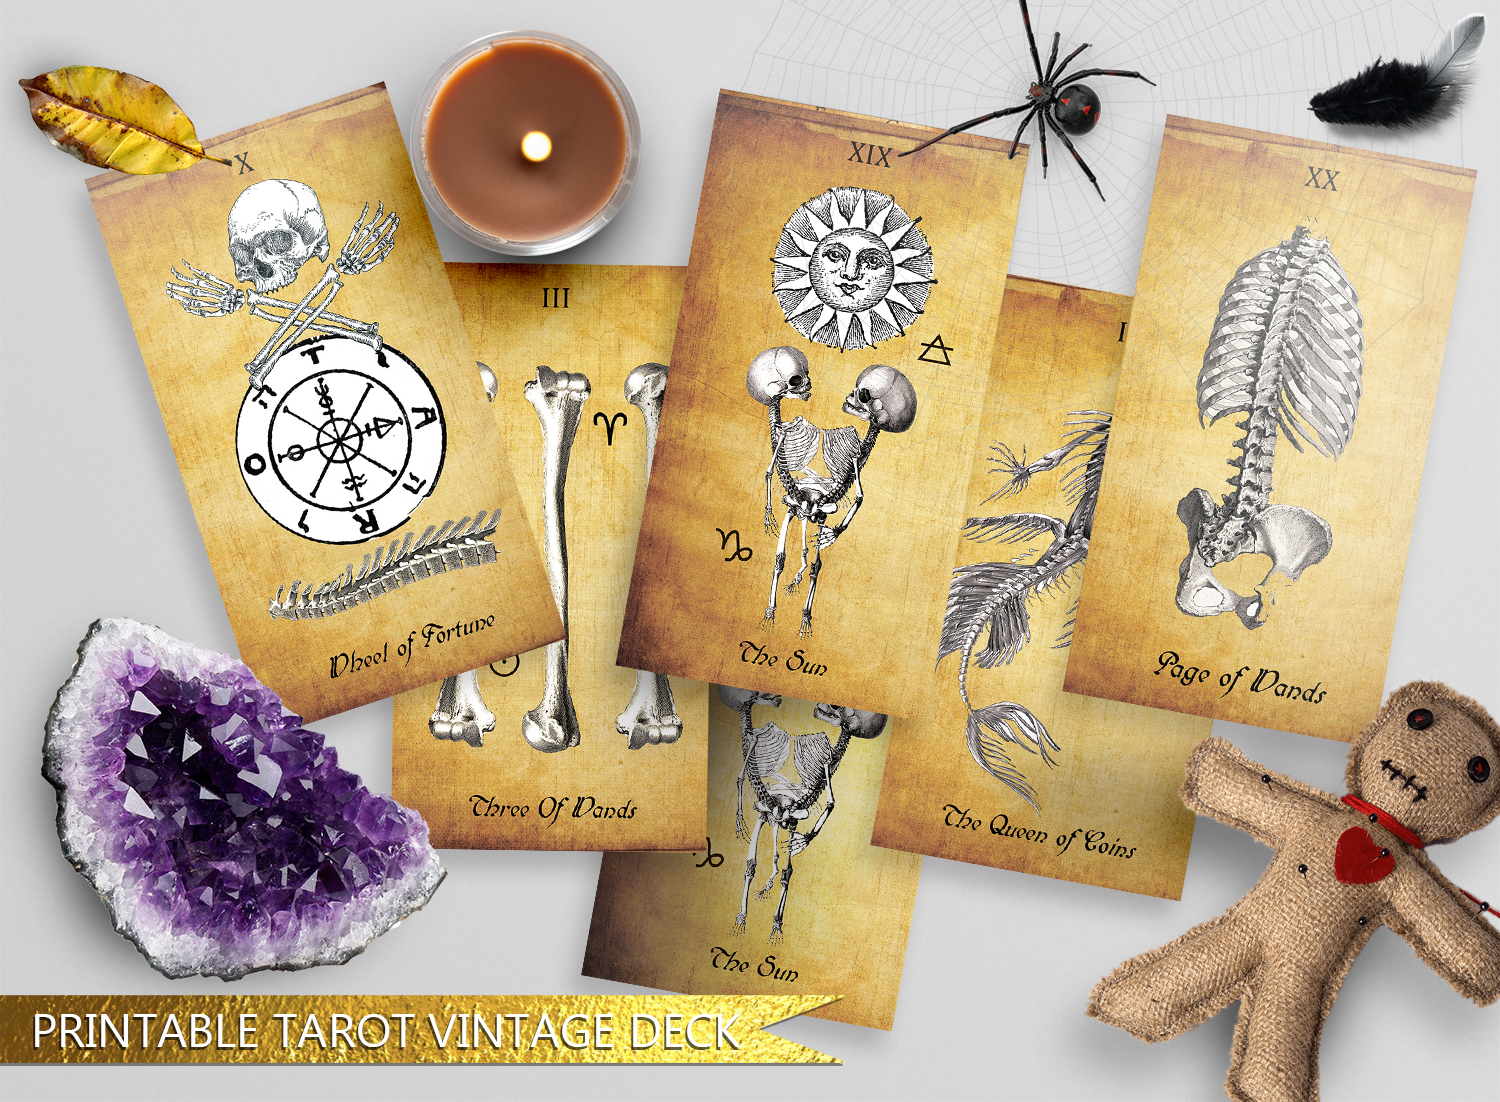 Printable Antique Vintage Tarot Deck by Natali Marly